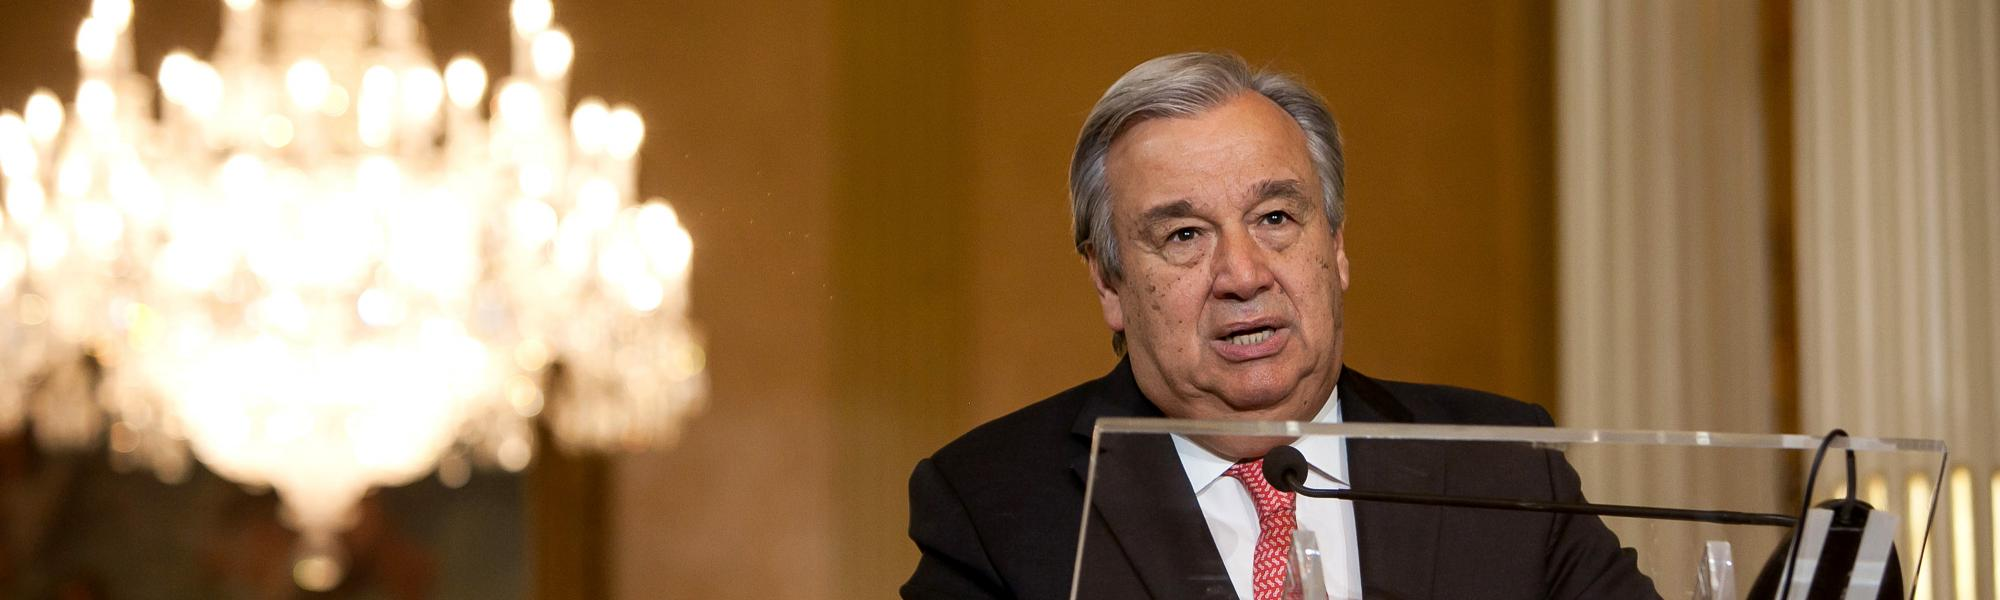 UN Secretary General reminds UN member states of the fundamental role of TIR during COVID-19